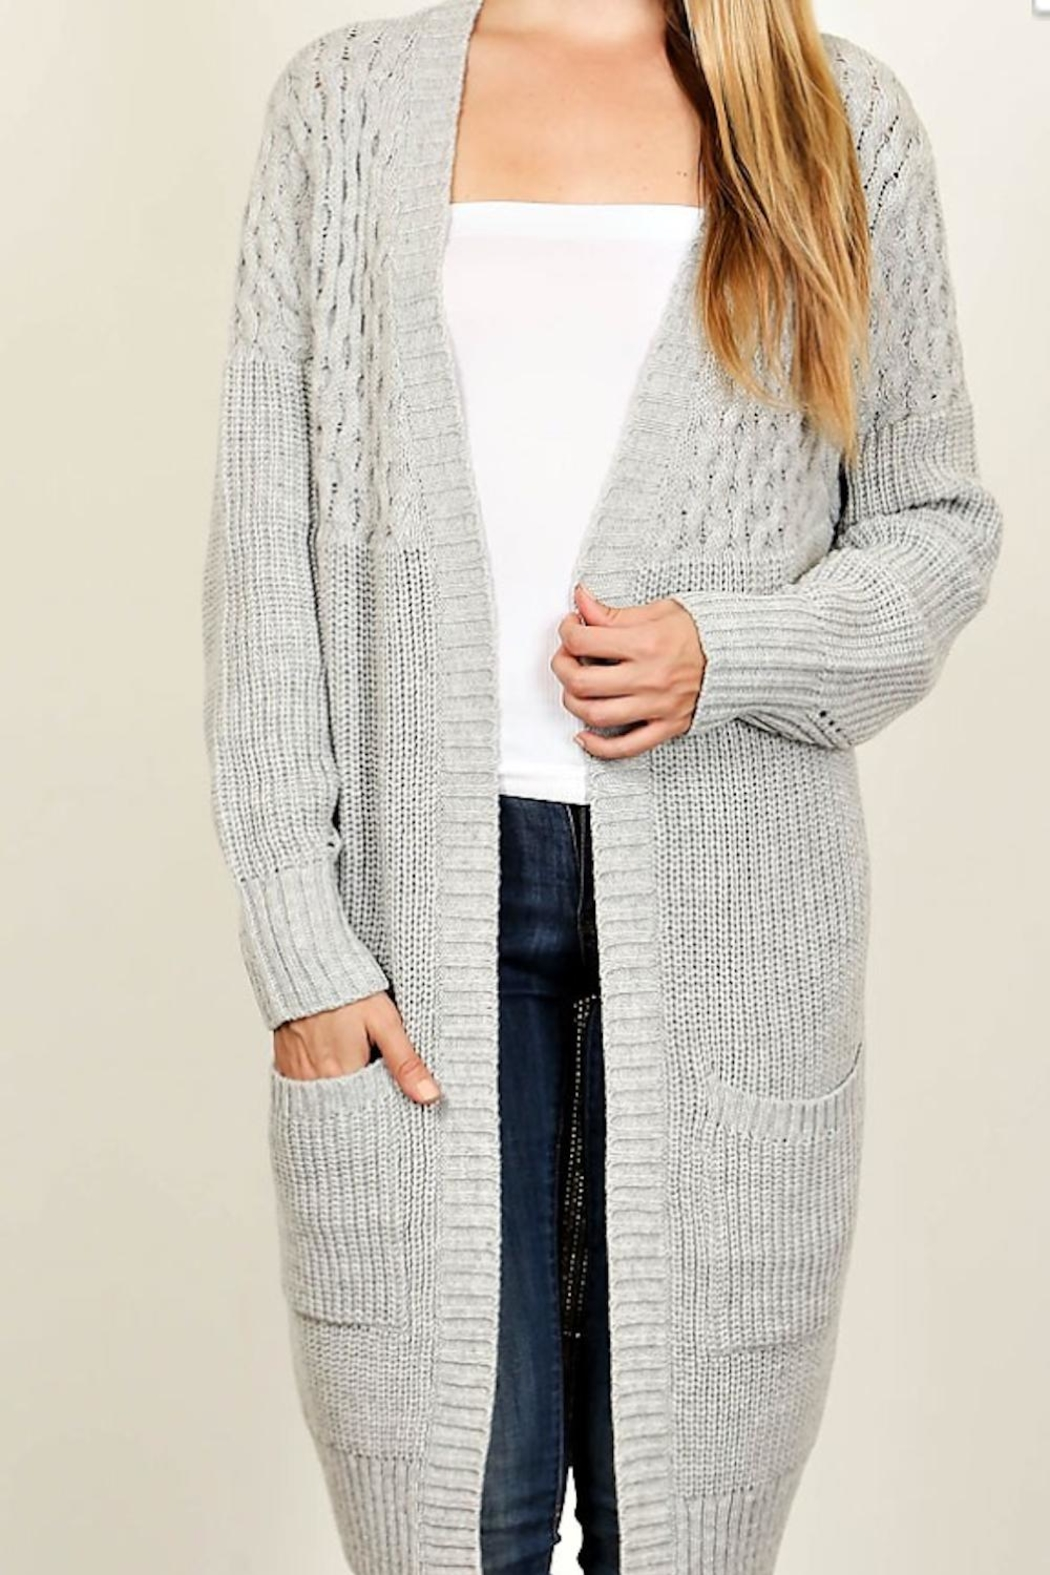 Fascination Ivory Knit Cardigan - Main Image